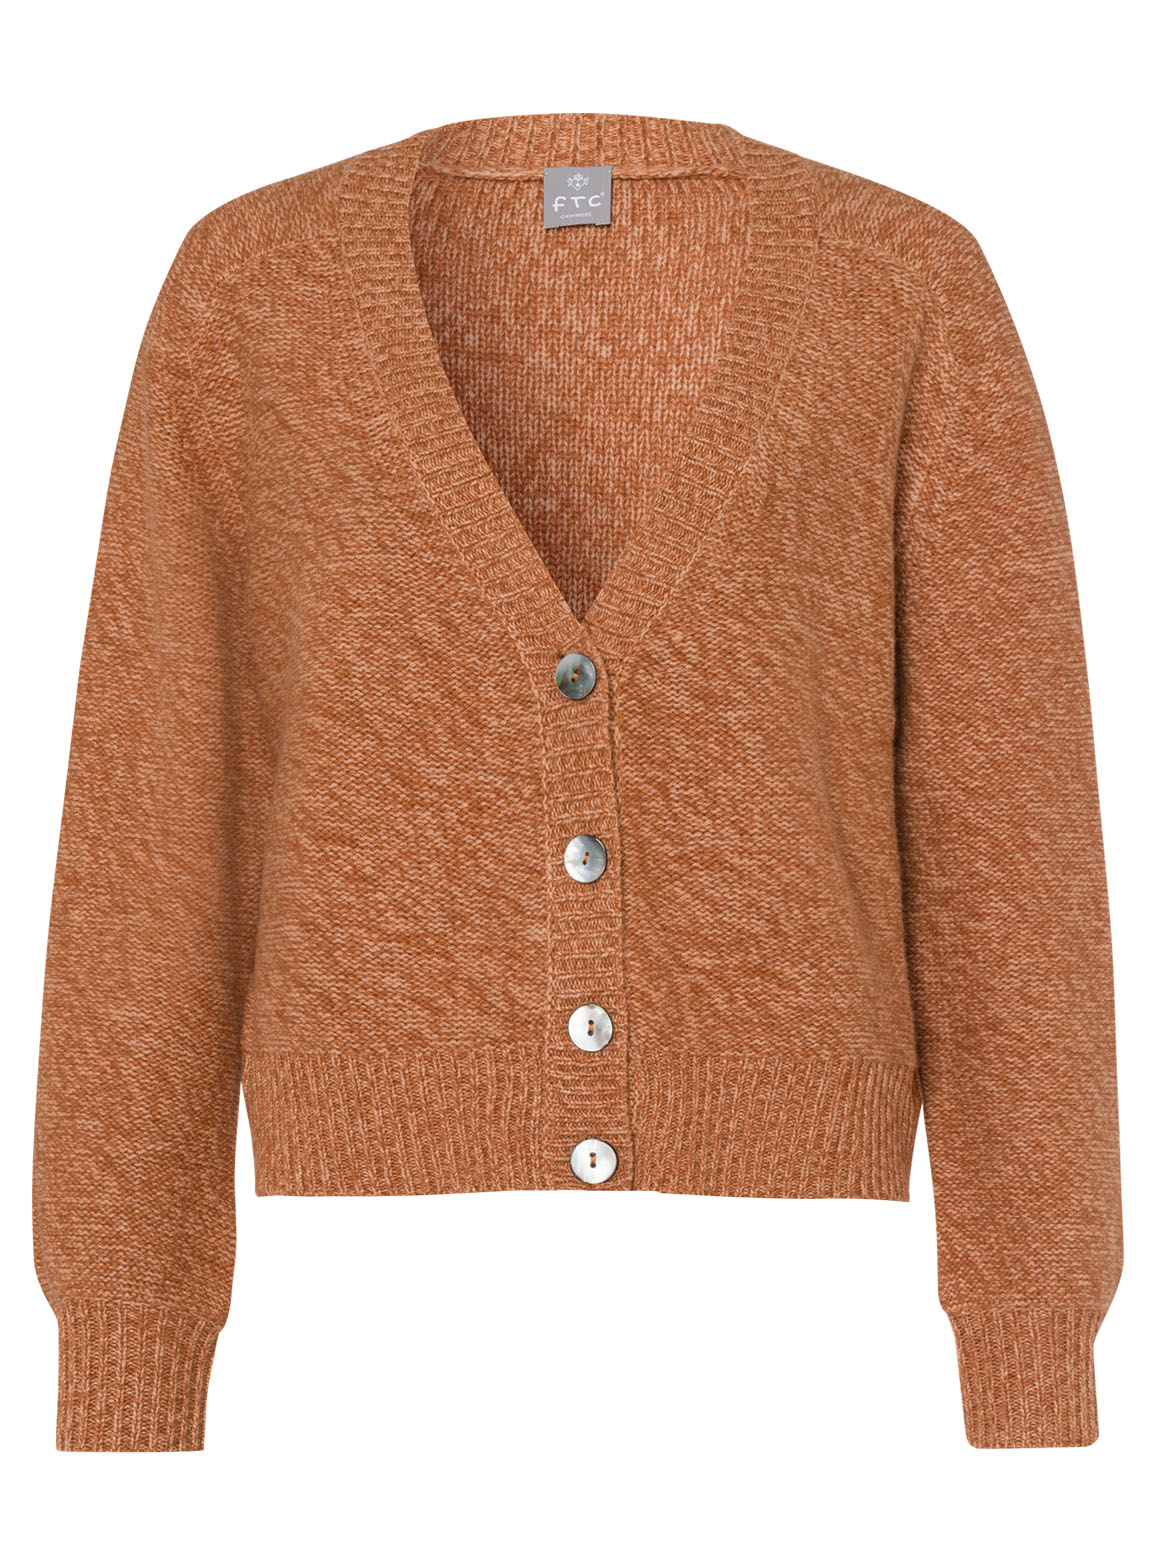 Wide fitting Cardigan with two-toned effect